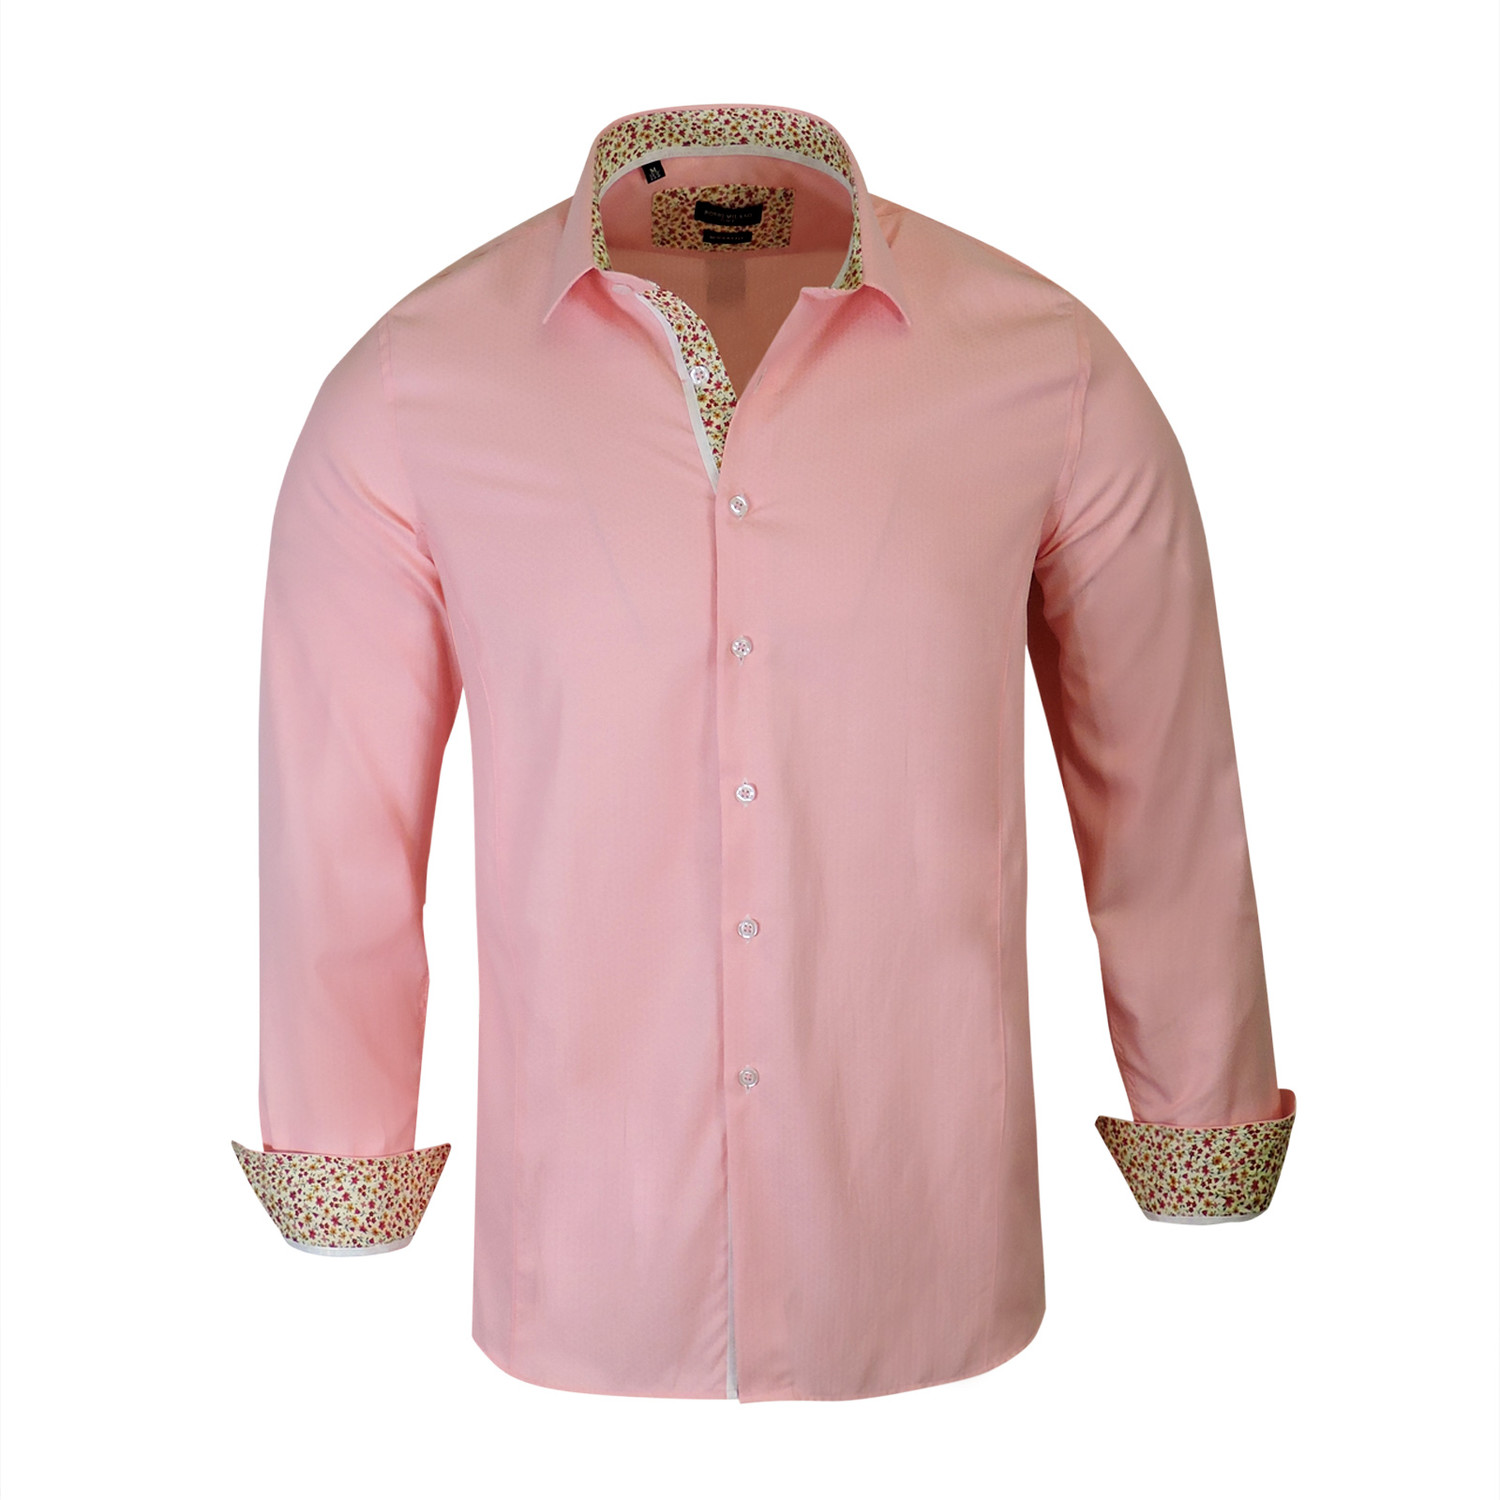 Ross True Modern Fit Long Sleeve Dress Shirt Coral S Rosso